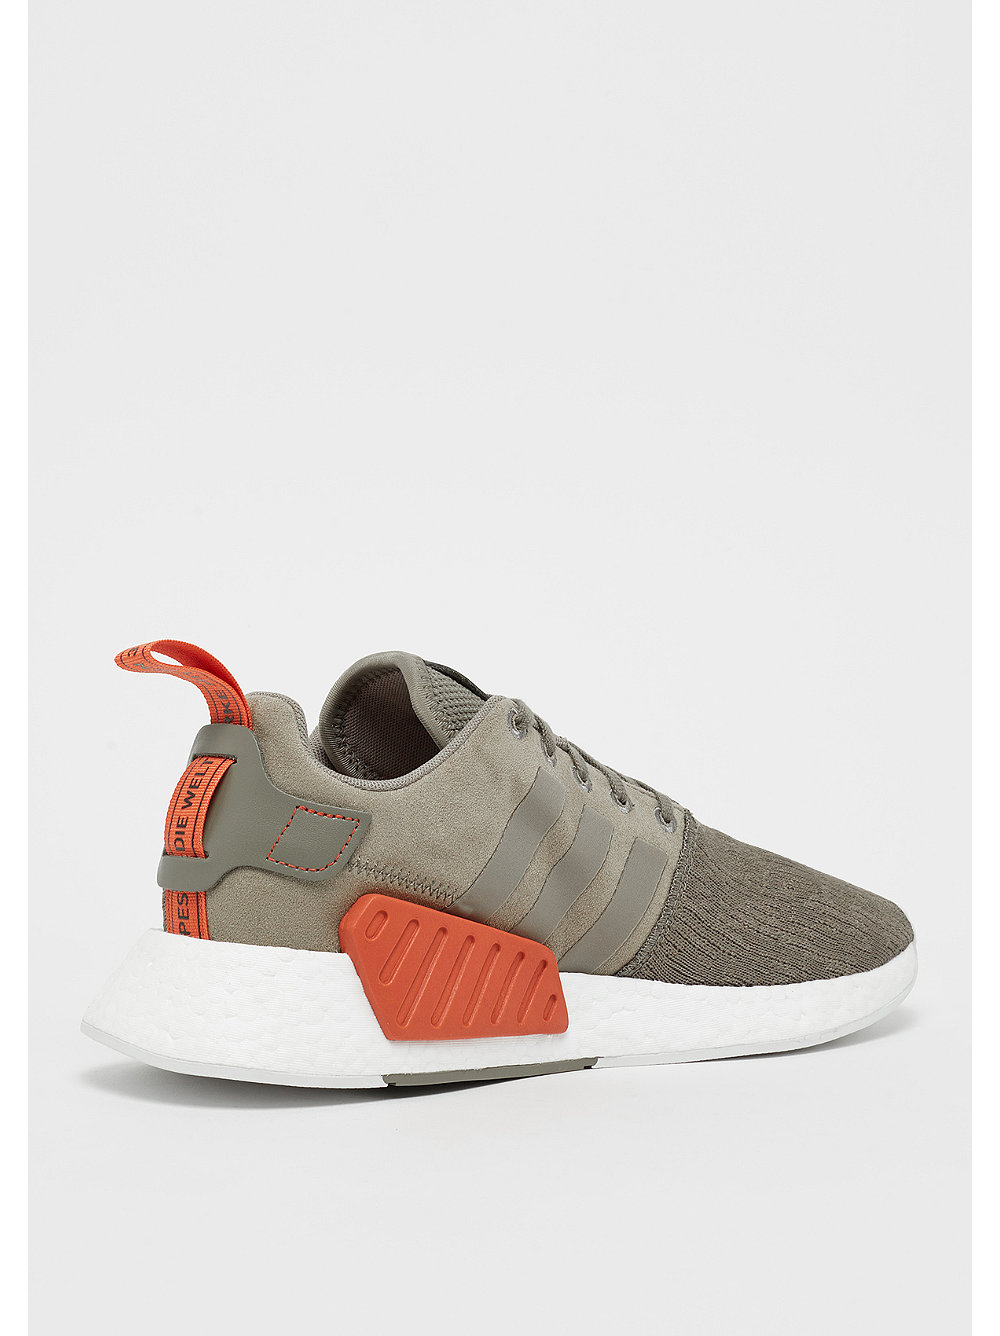 Order Cheap Adidas Sneakers Online NMD XR1 Duck Camo Olive